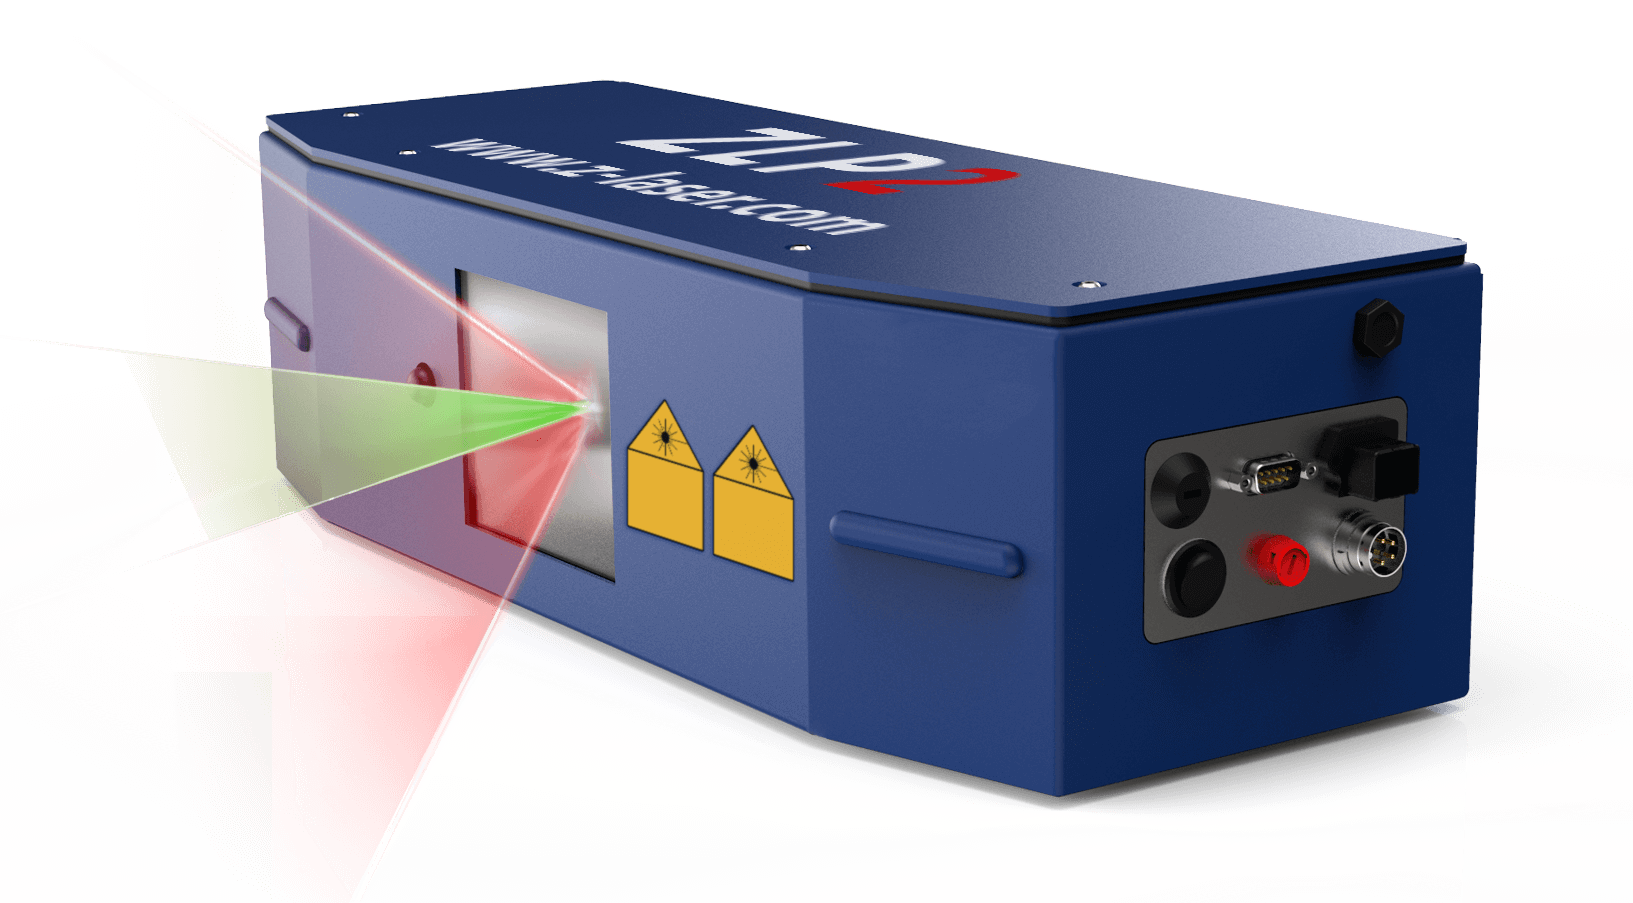 , Nordex relies on laser projectors from Z-LASER